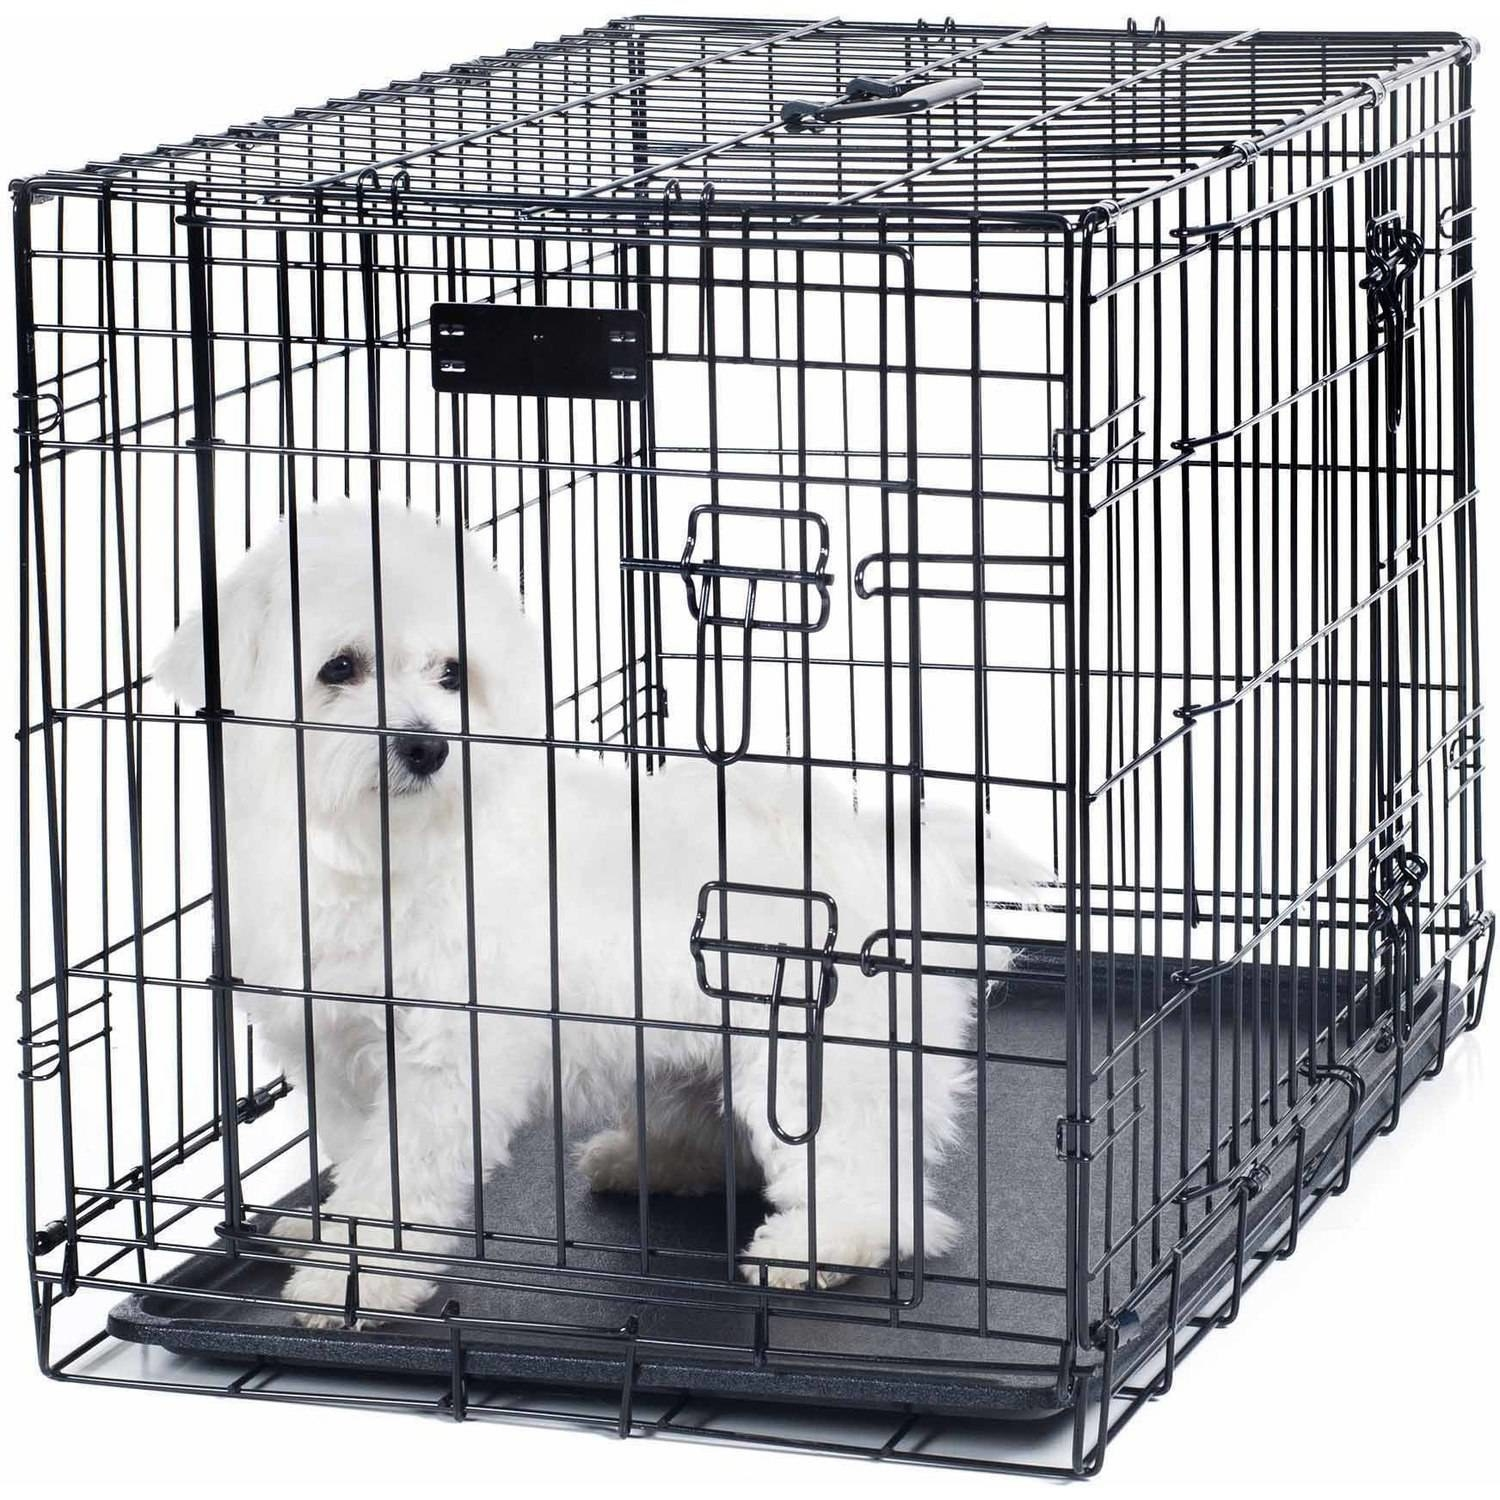 black metal crate with a dog inside